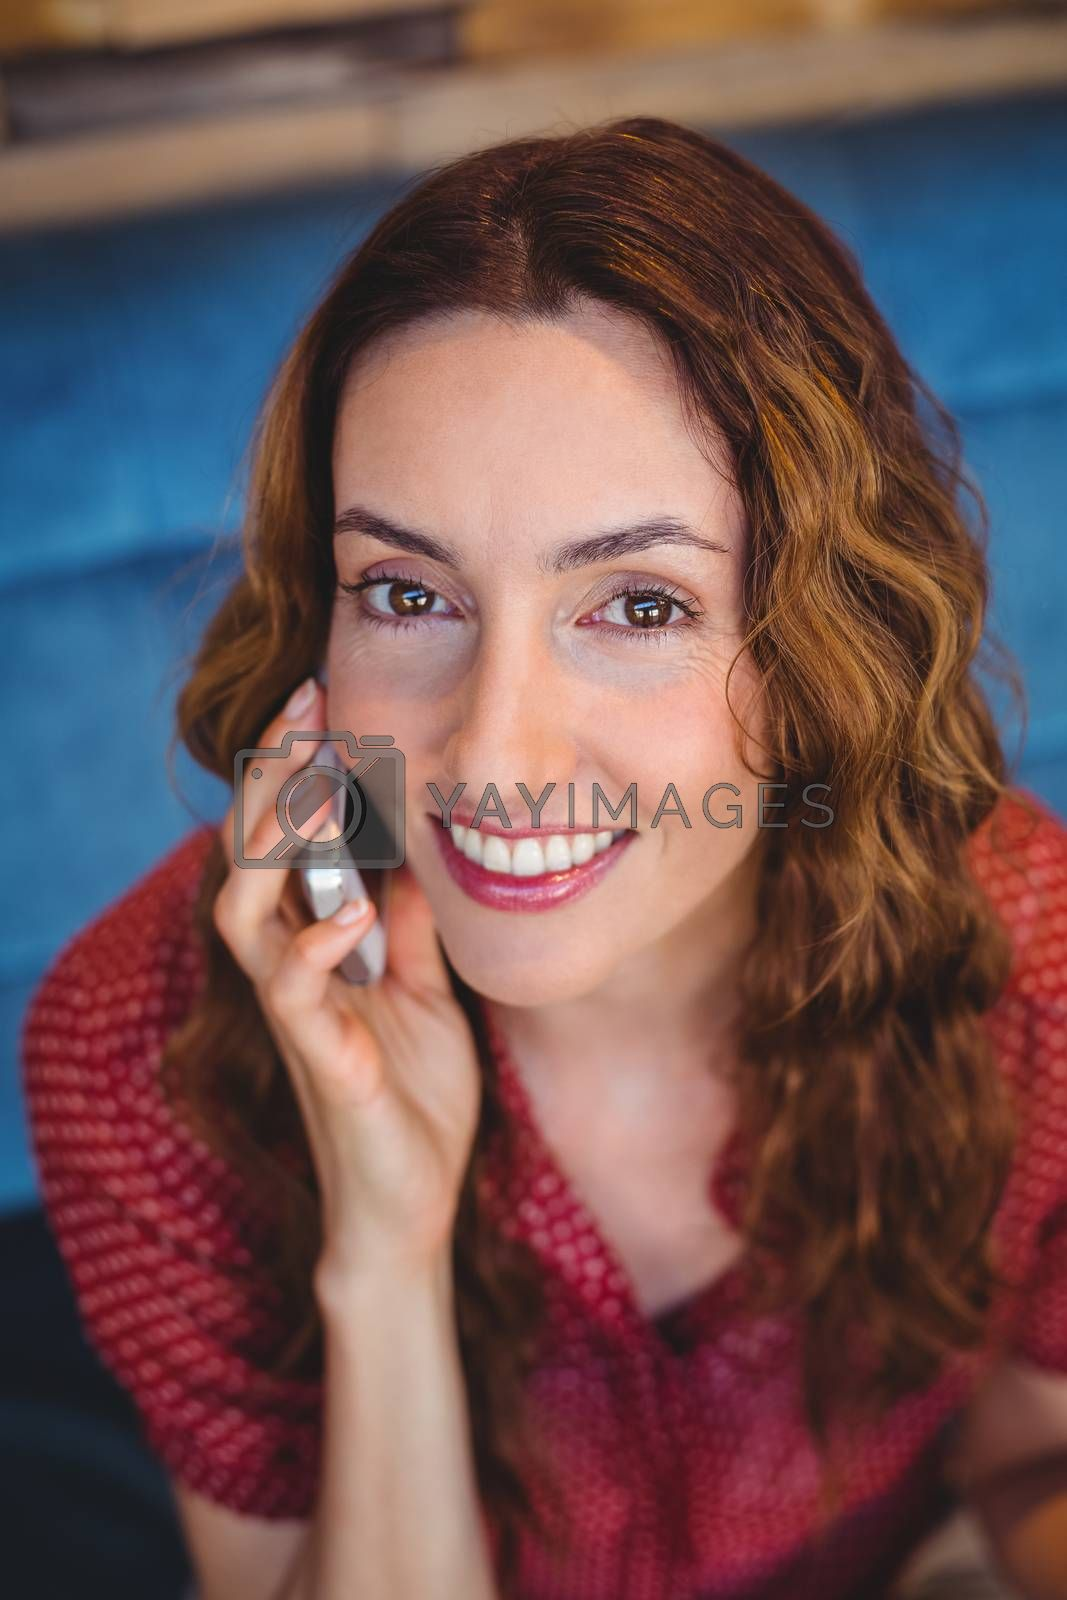 Royalty free image of Woman on the phone by Wavebreakmedia